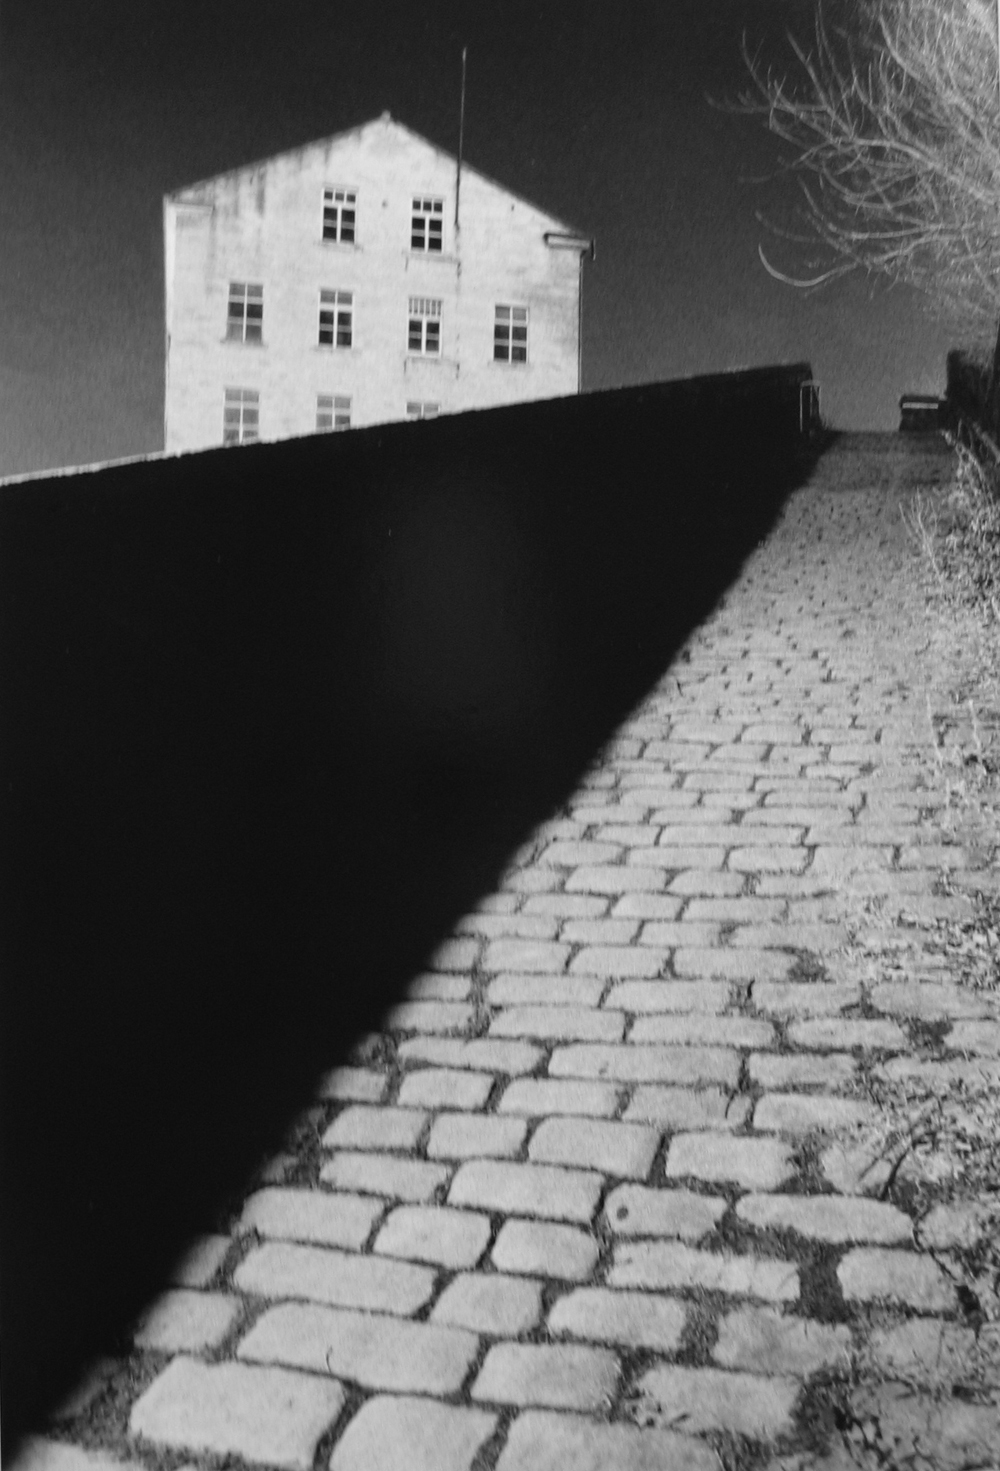 Michael Kenna, Bill Brandt's Snicket, England,1986, gelatin silver print, 9 x 6 inches, sold out edition of 45, price on request